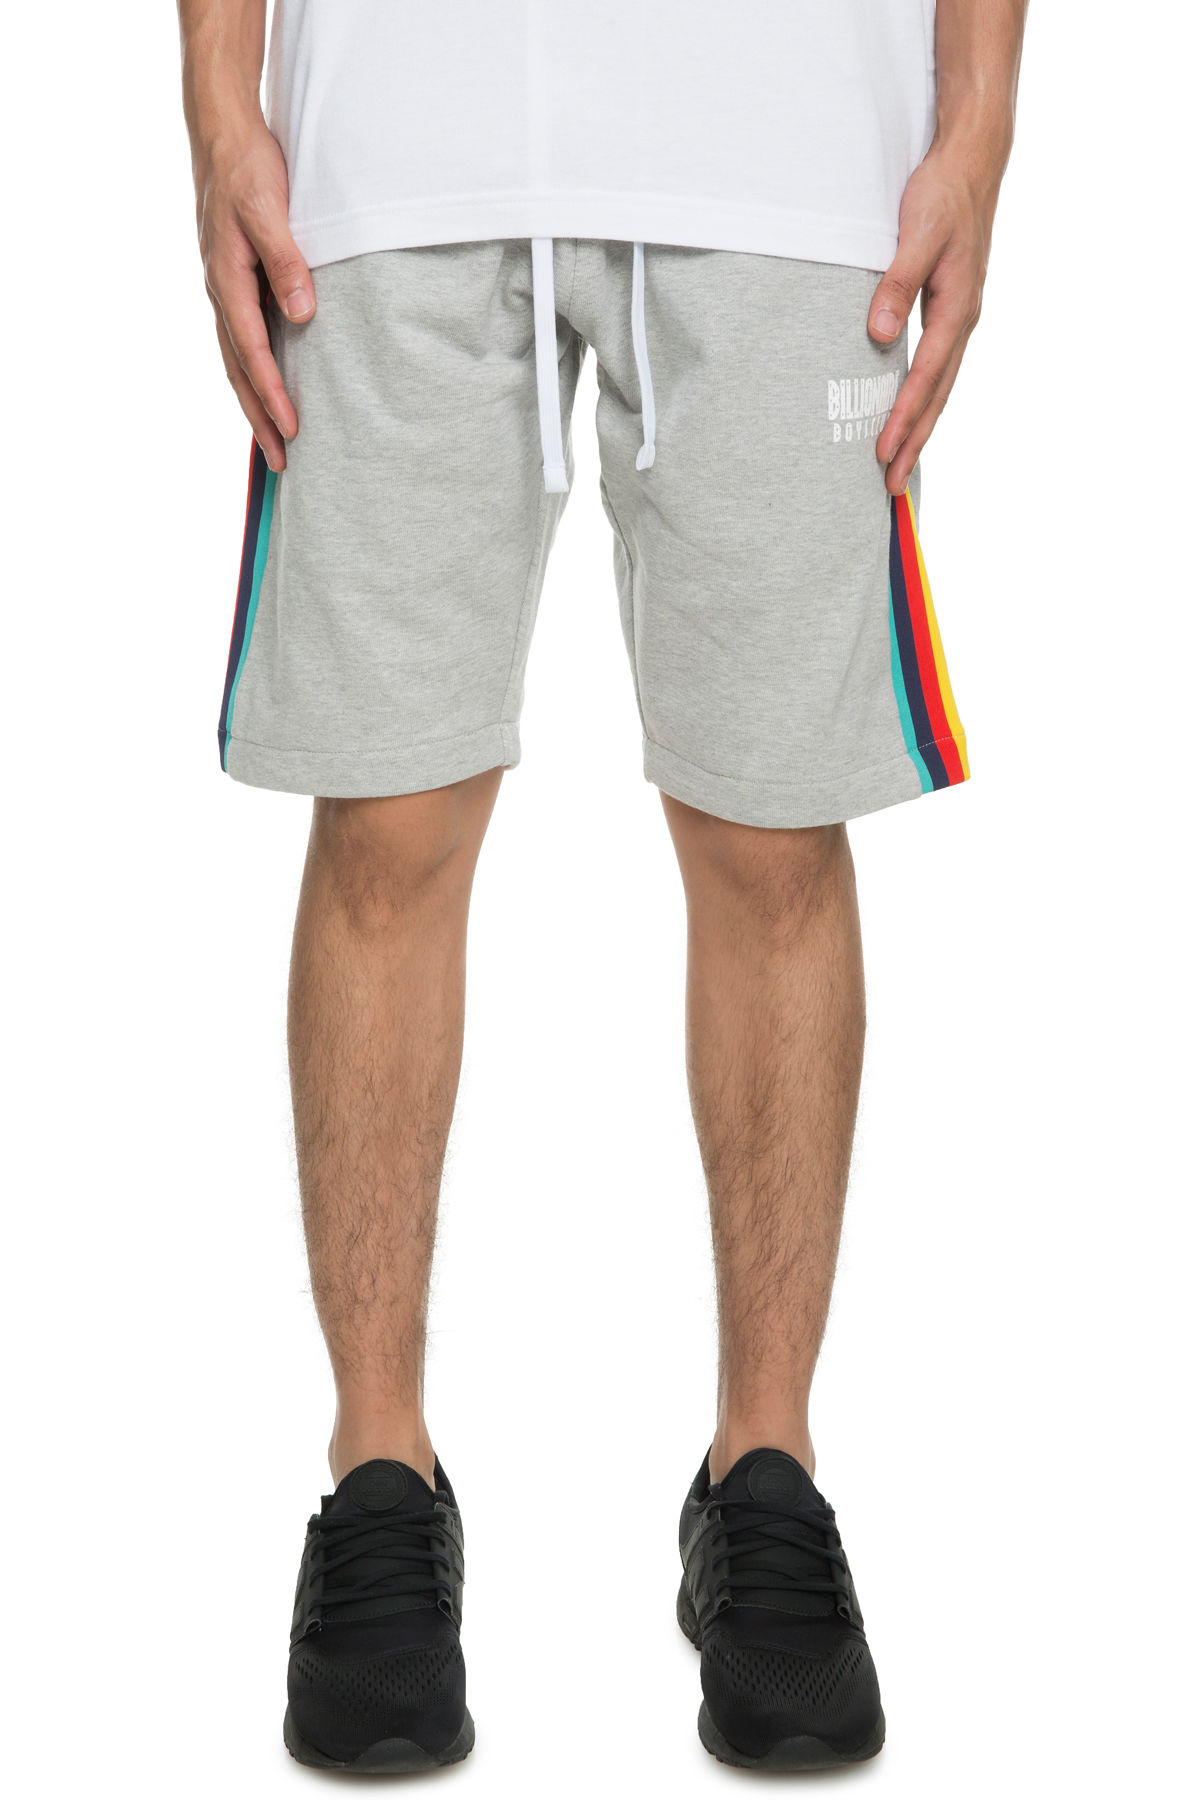 Image of The Billionaire Boys club ABA Shorts in Heather Grey